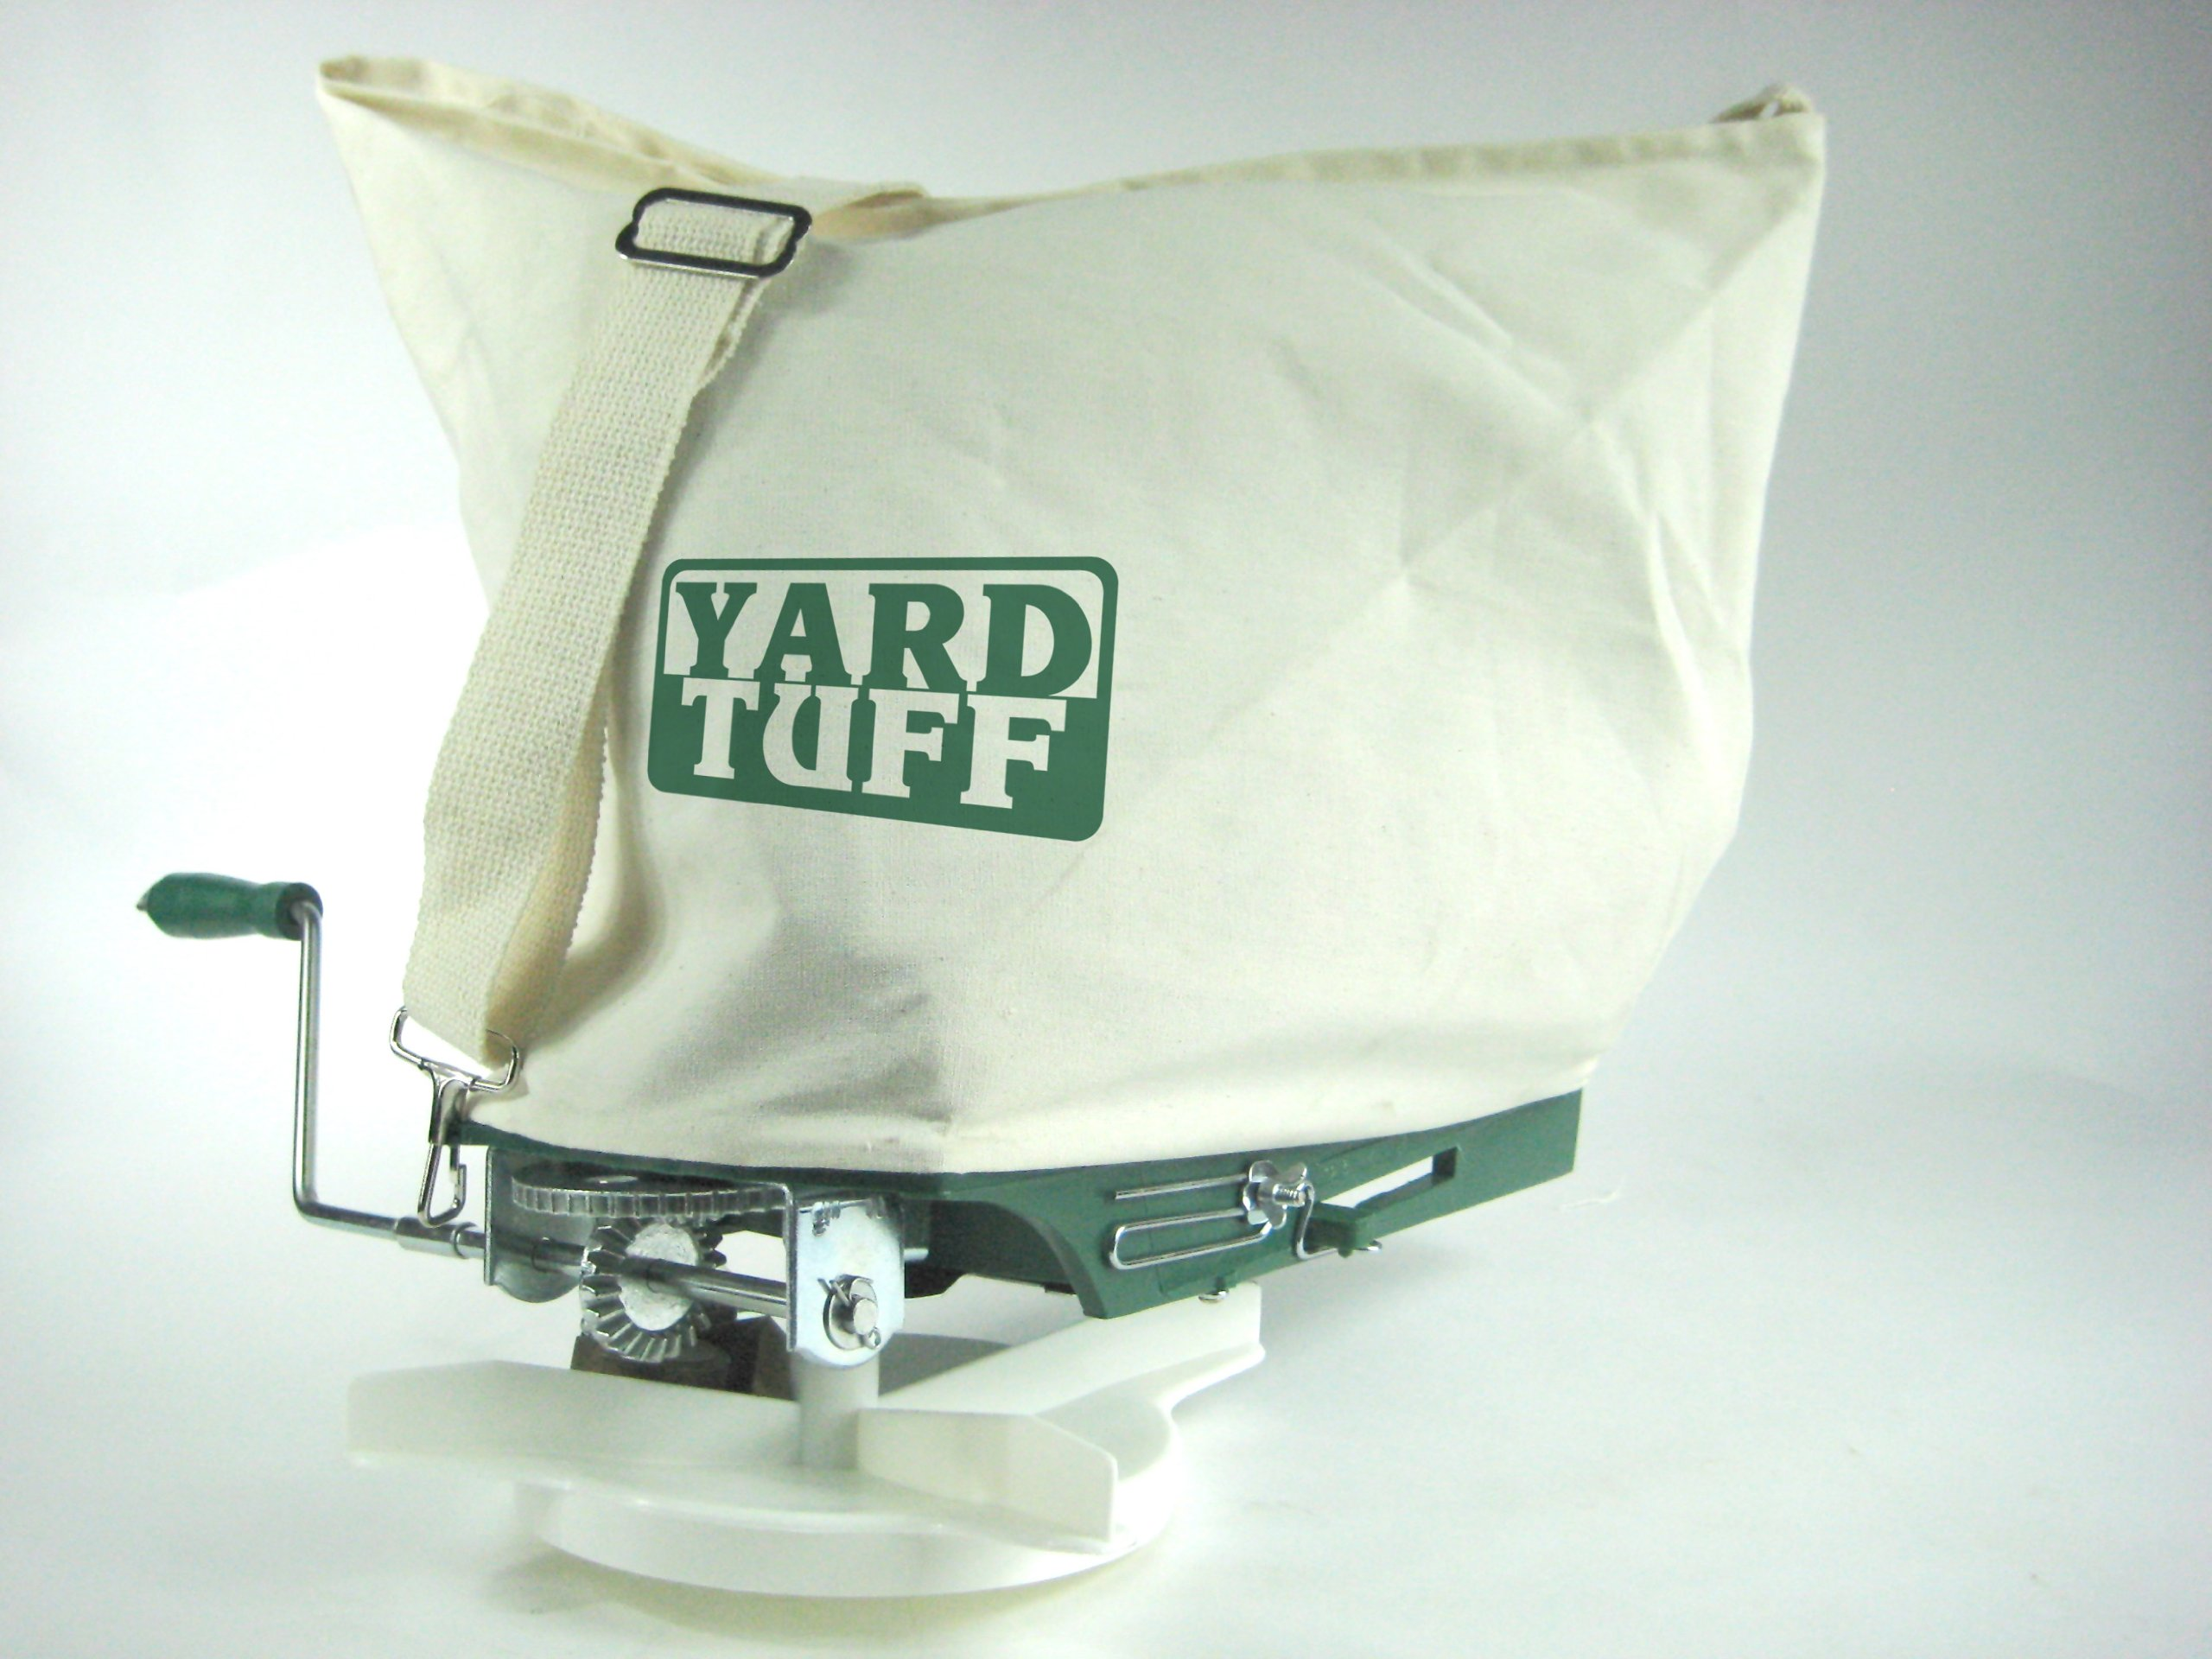 Yard Tuff YTF-25SS Shoulder Spreader, 25-Pound by Yard Tuff